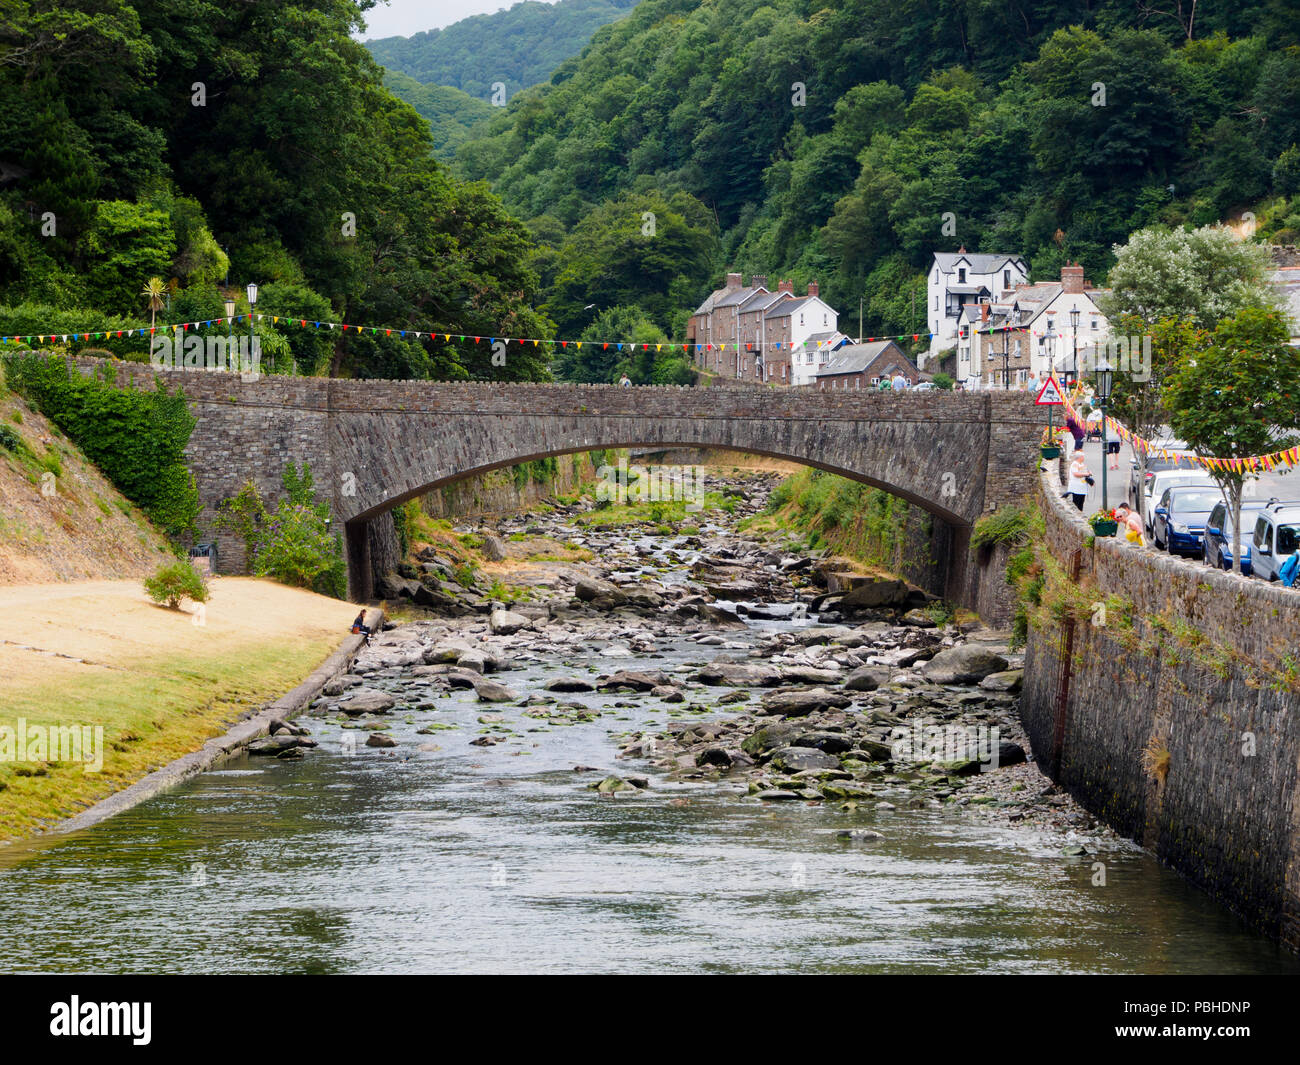 a39-road-bridge-arches-over-the-boulder-strewn-east-lyn-river-at-lynmouth-devon-uk-PBHDNP.jpg